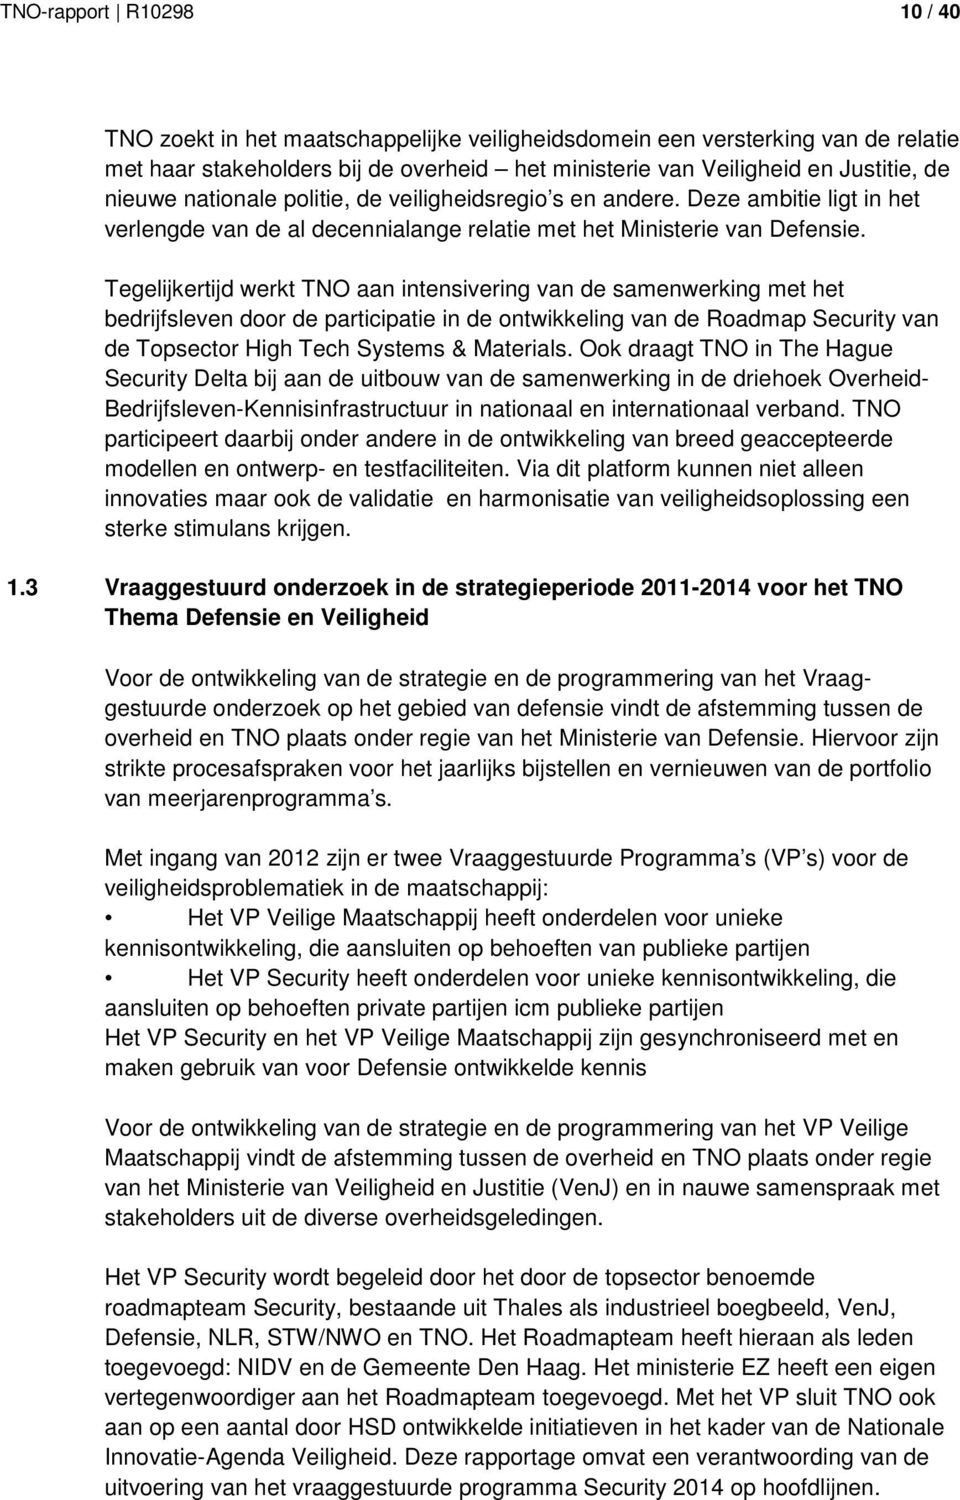 Tegelijkertijd werkt TNO aan intensivering van de samenwerking met het bedrijfsleven door de participatie in de ontwikkeling van de Roadmap Security van de Topsector High Tech Systems & Materials.